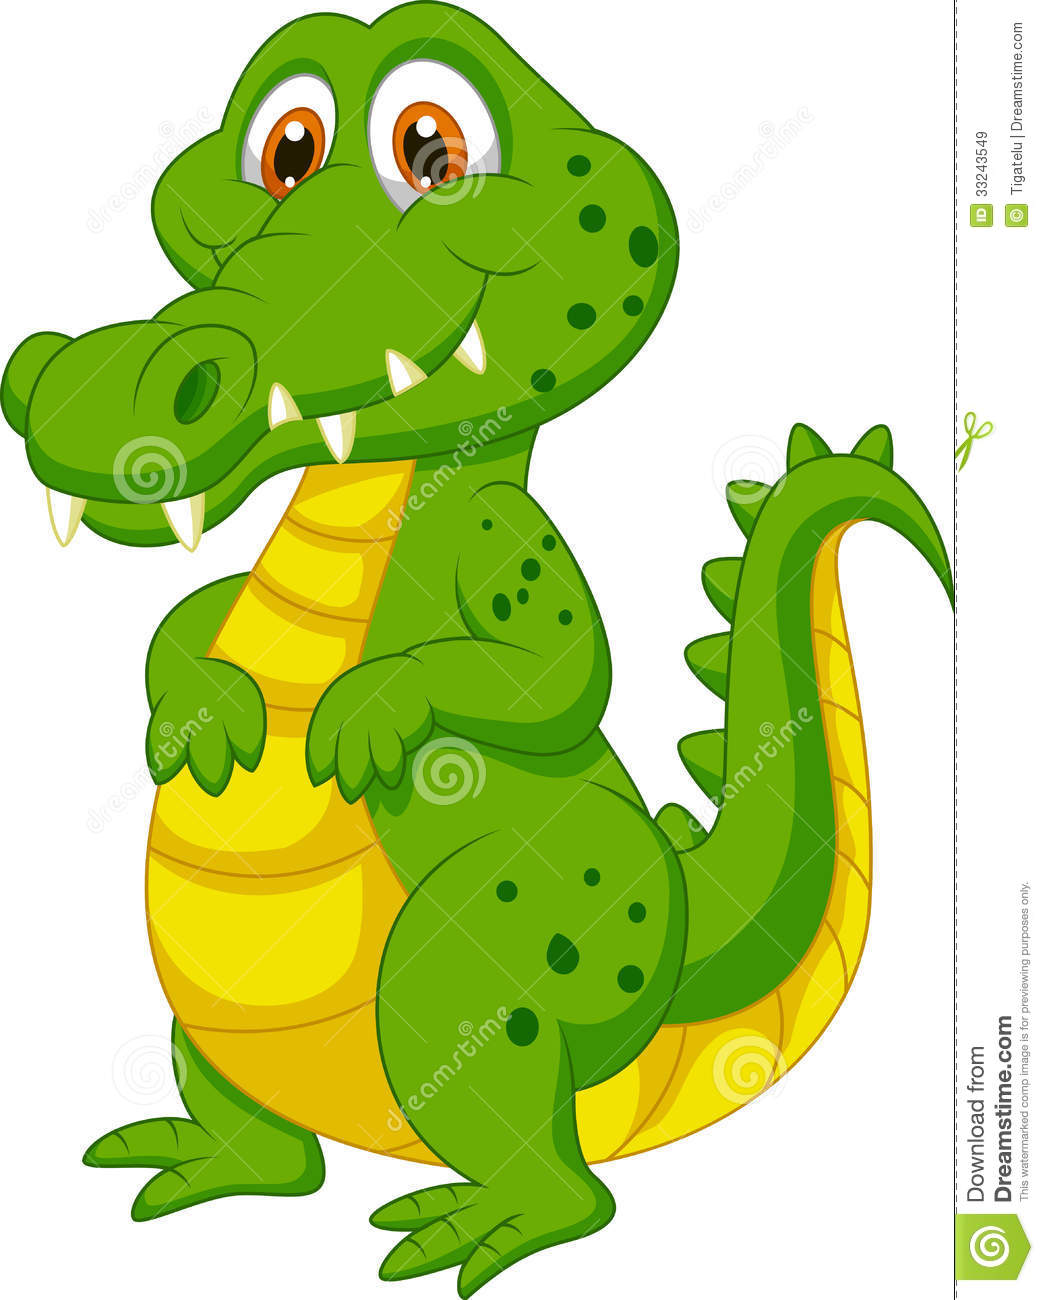 Free Animated Alligator Clipart